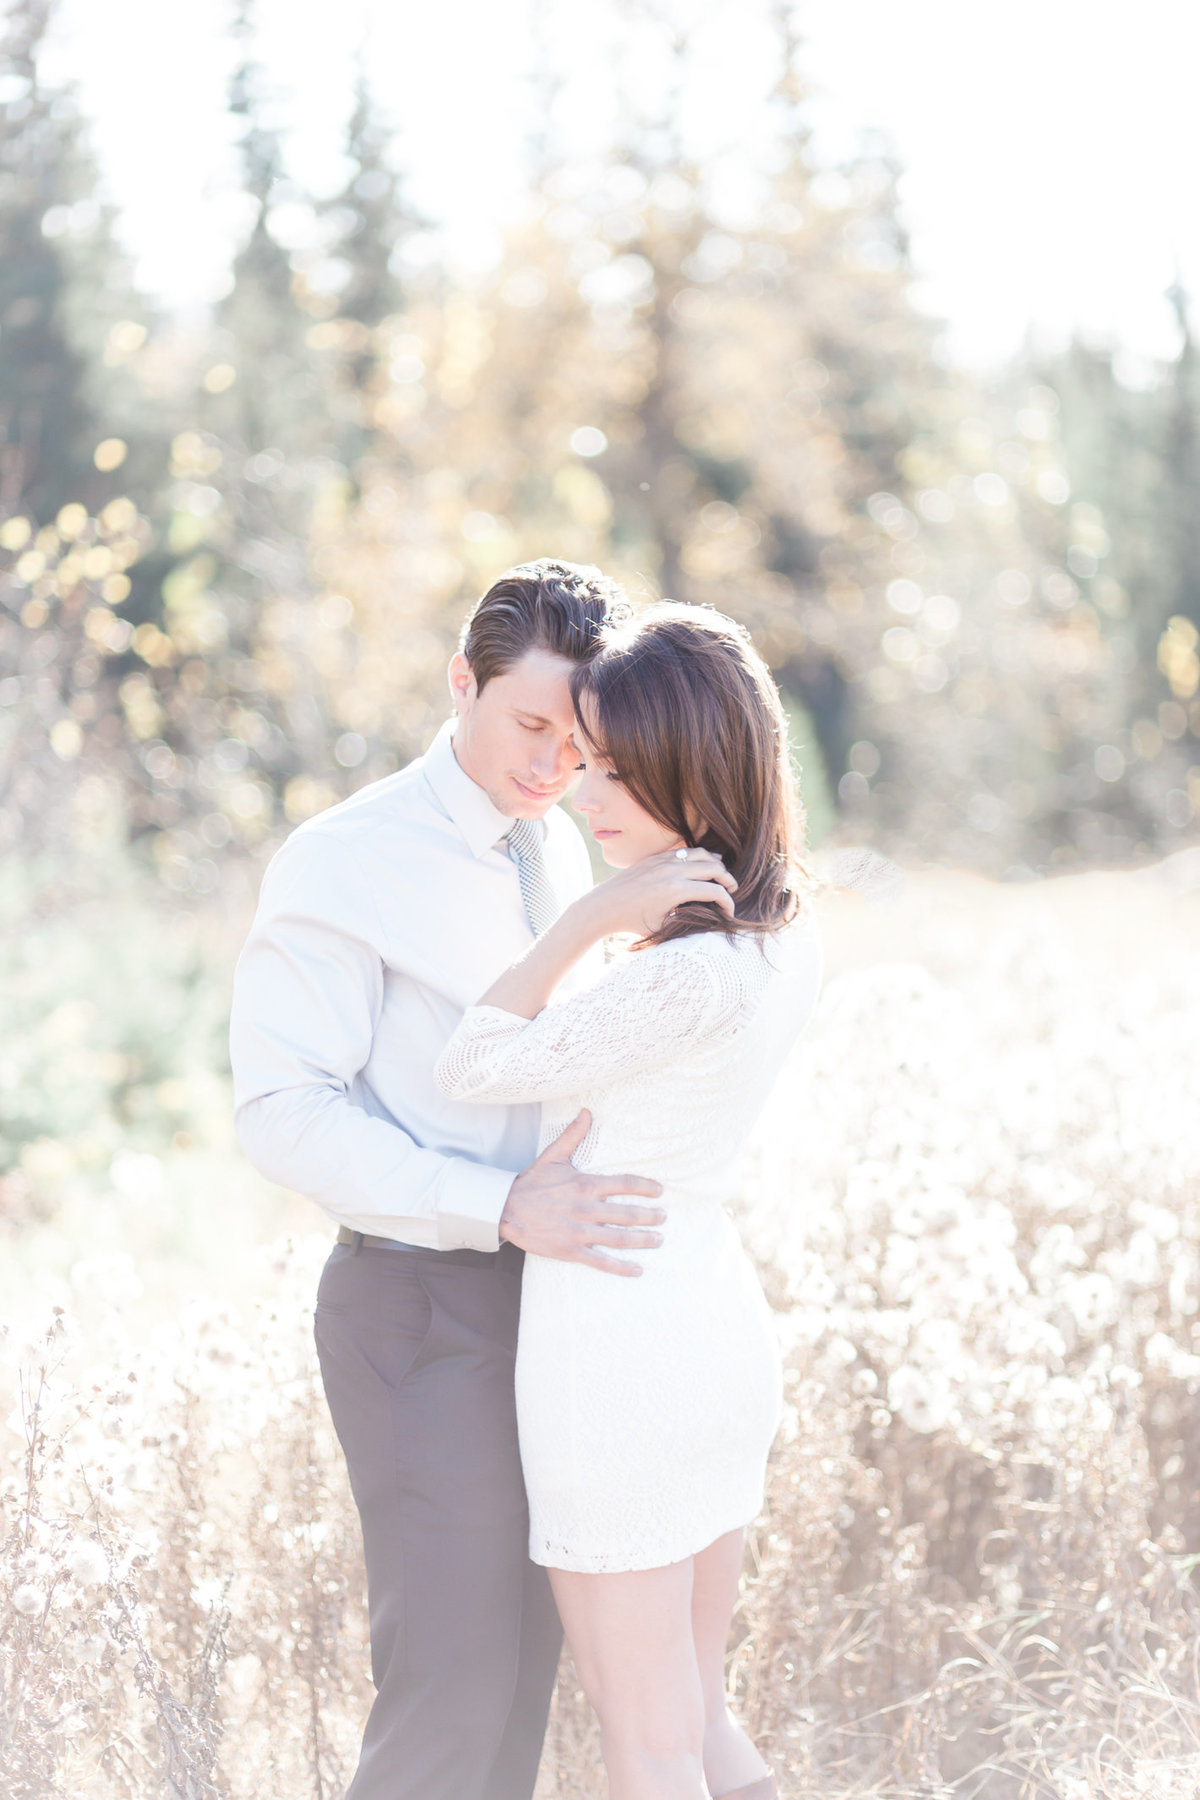 Victoria Blaire Best Kelowna Okanagan Wedding Photographer Whimsical|Romantic|Sentimental-2